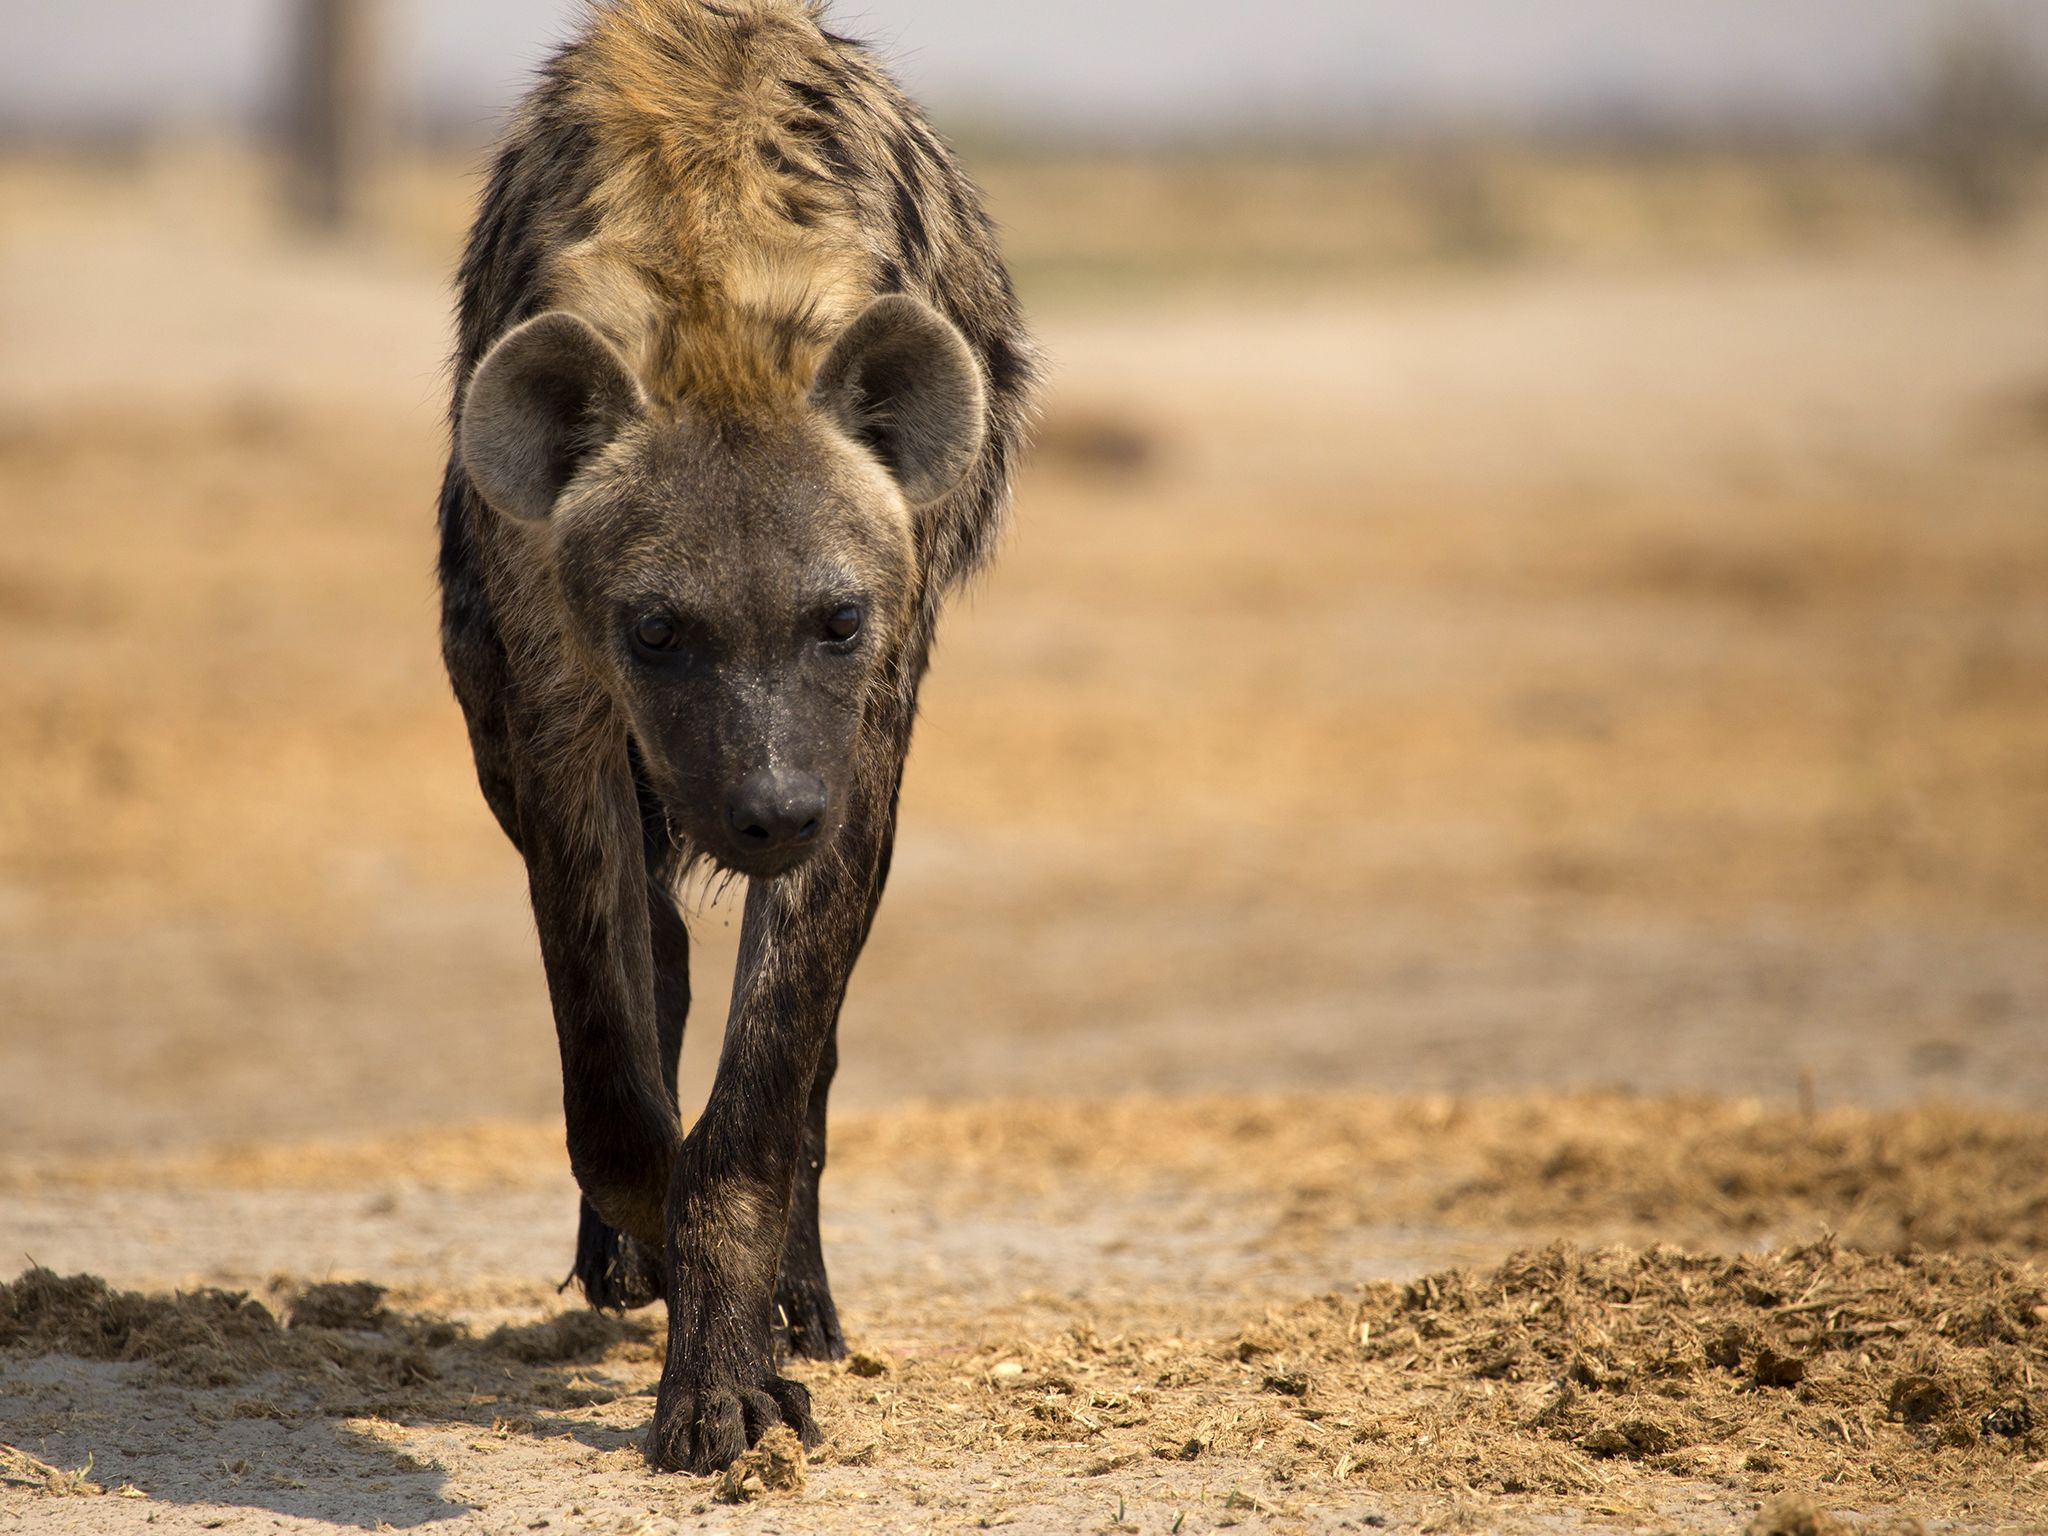 Botswana: Zalika's daughter and princess of the hyena clan walks over arid ground at Marabou... [Photo of the day - November 2016]